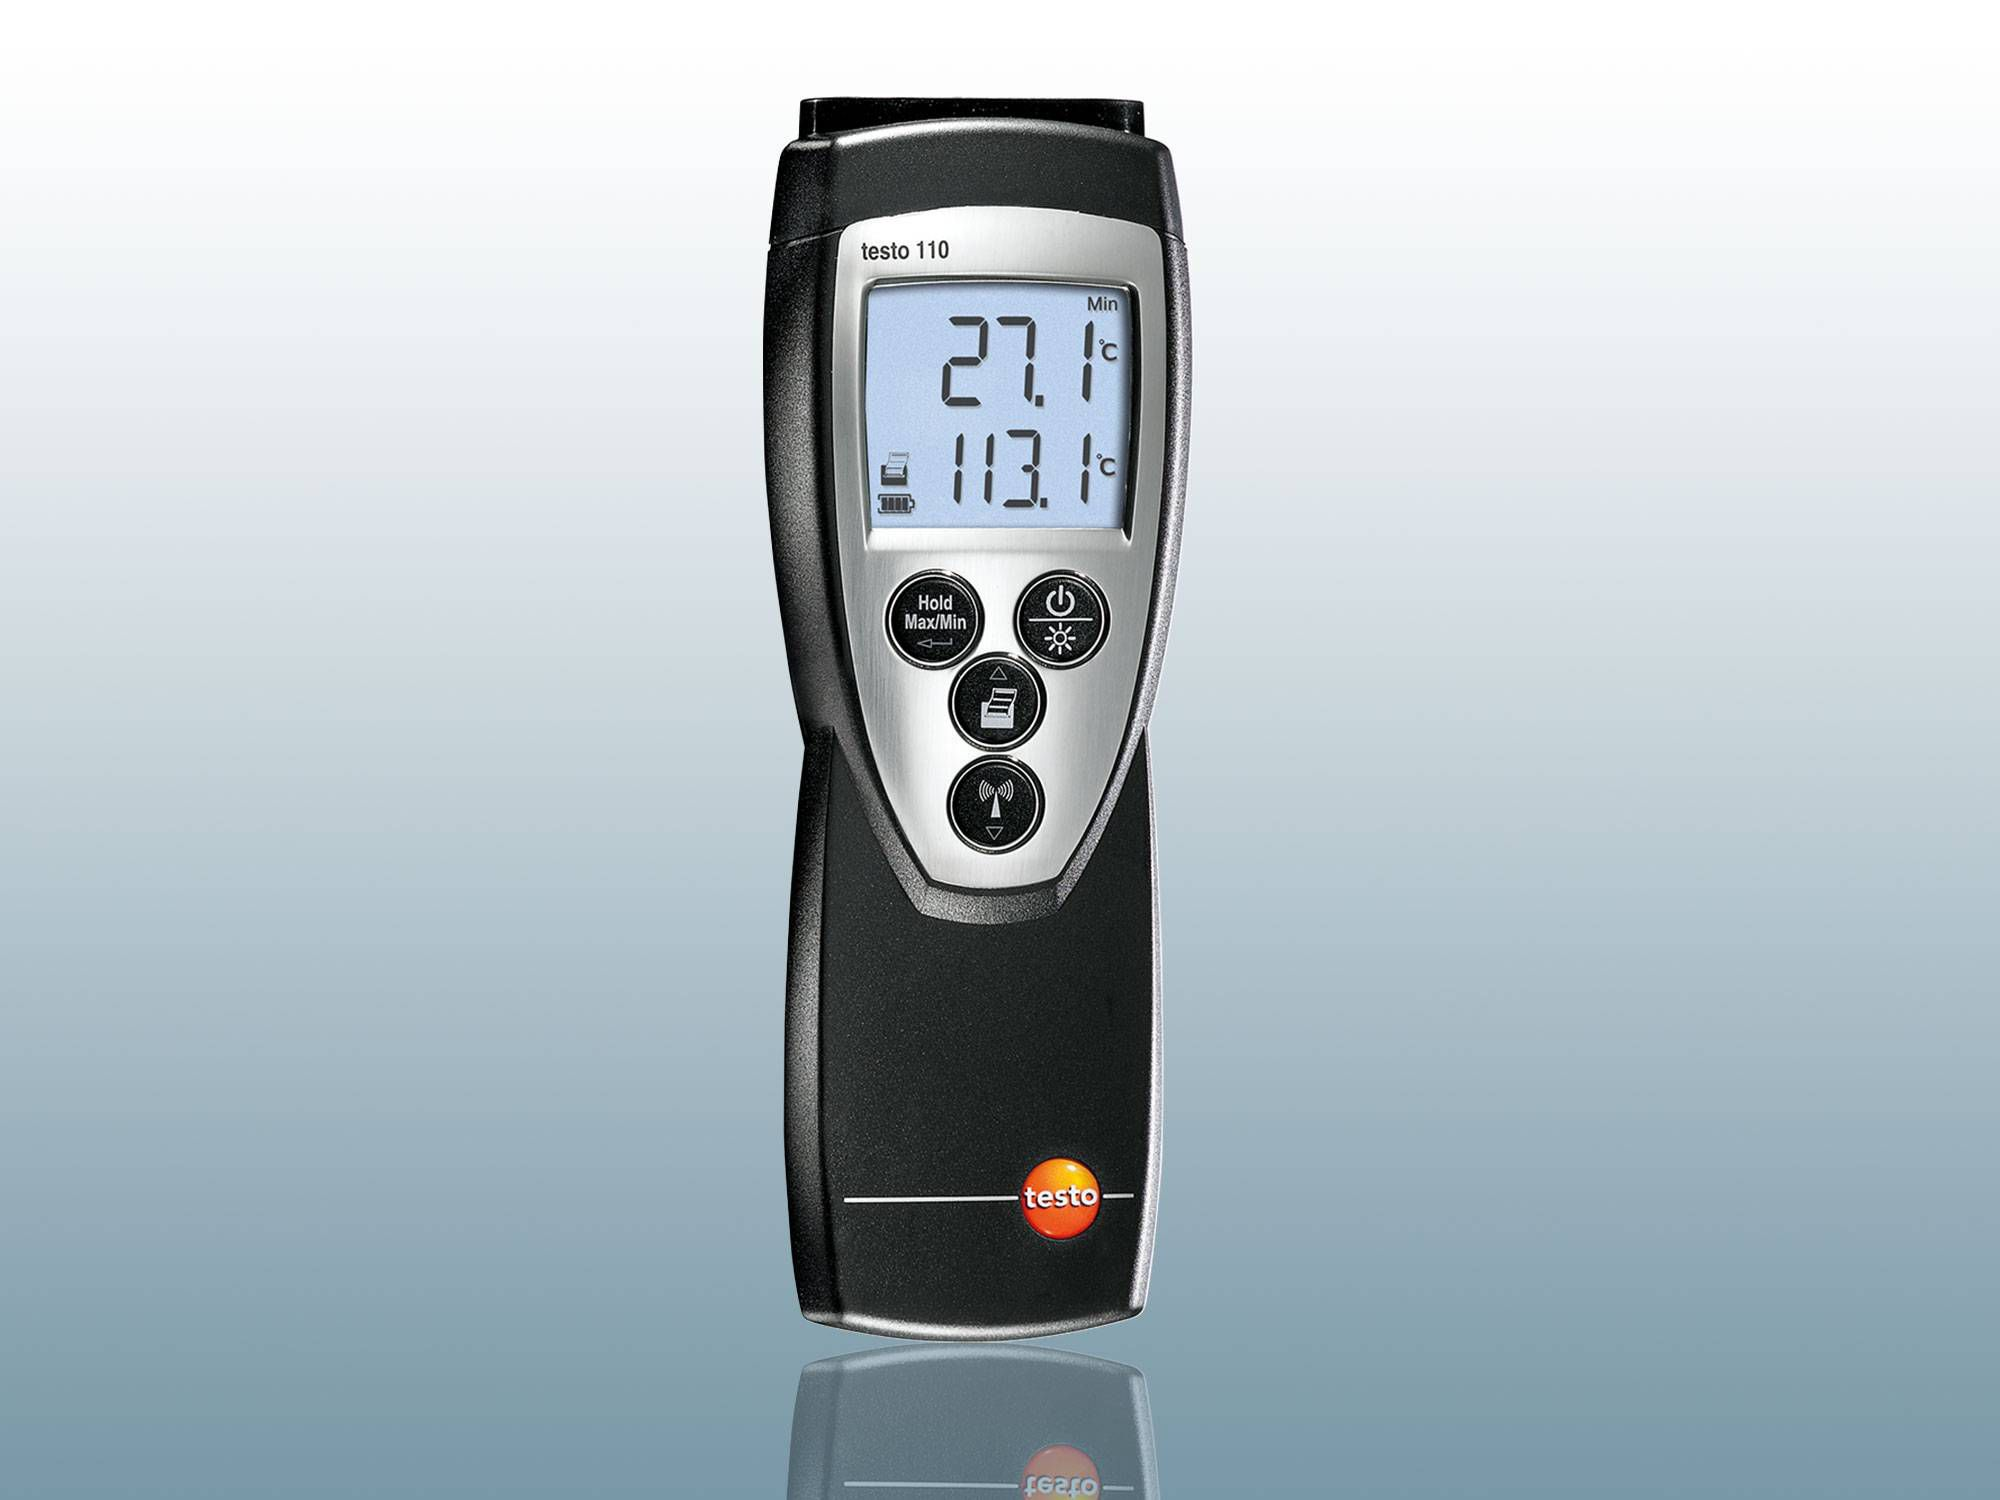 Immersion thermometers